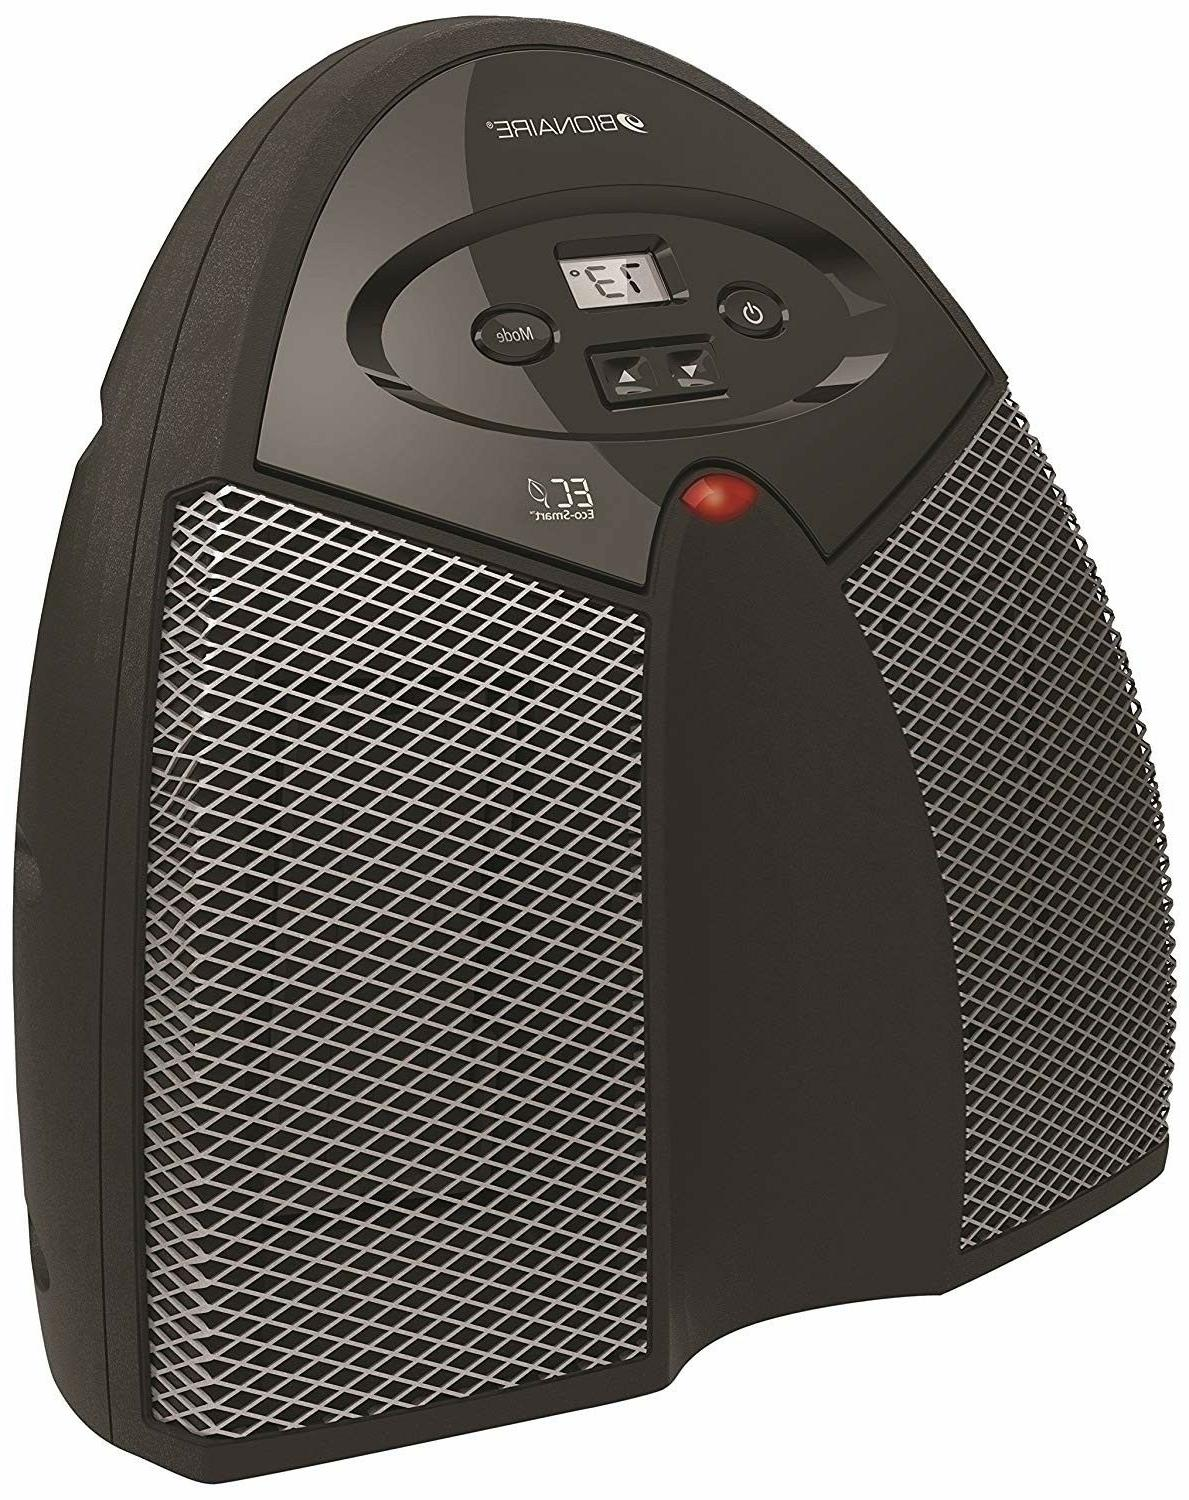 Bionaire Space Heater Space Heater For Bathroom Office Space